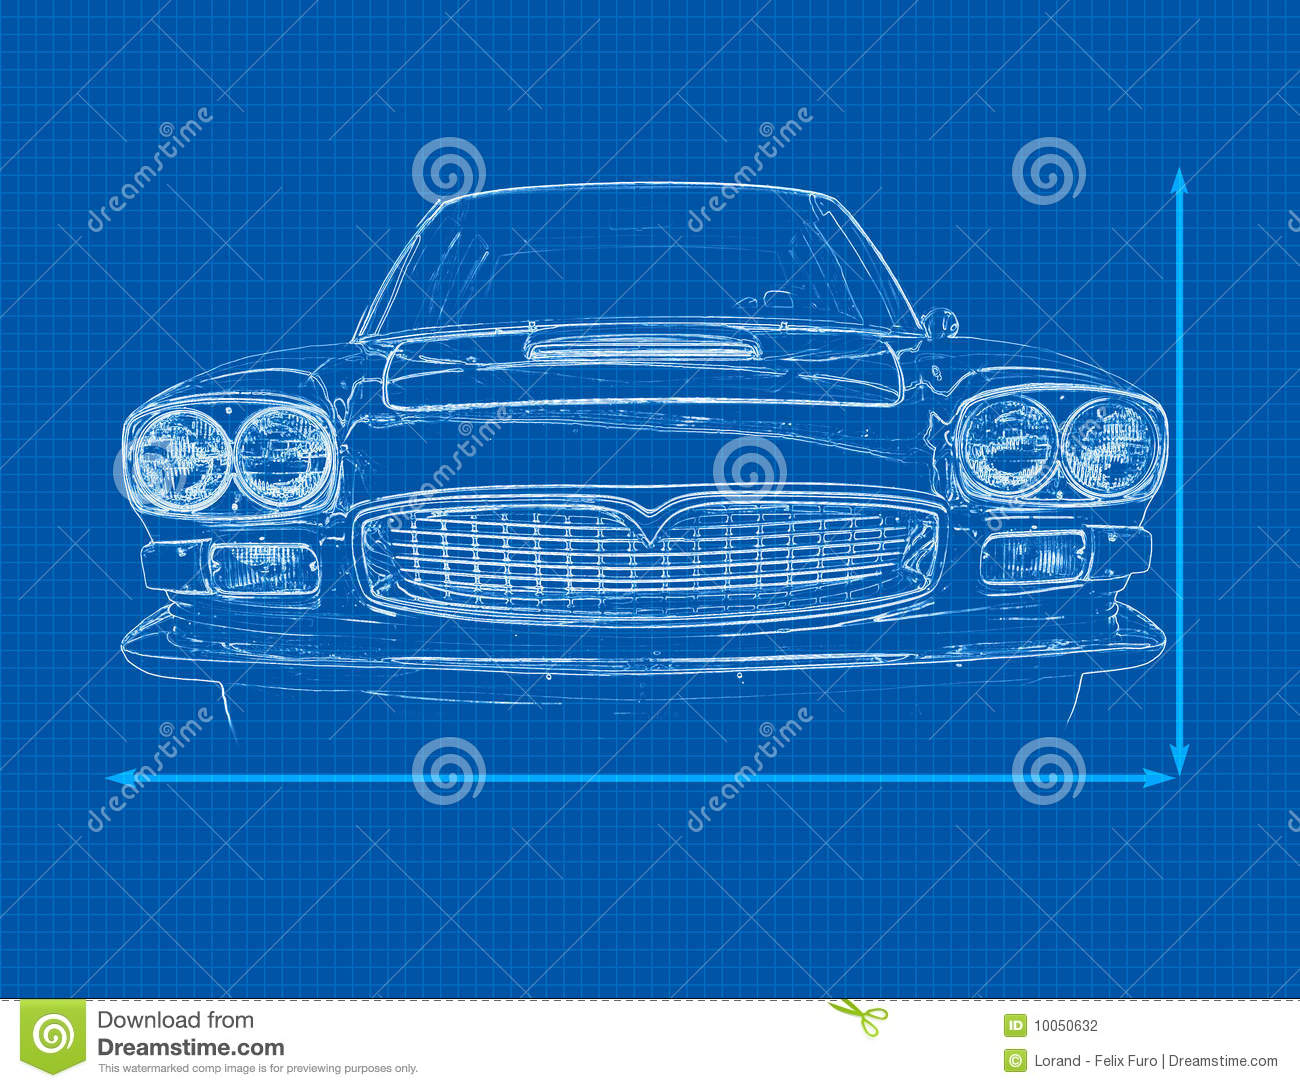 Car Blueprint stock illustration. Illustration of modelling - 10050632